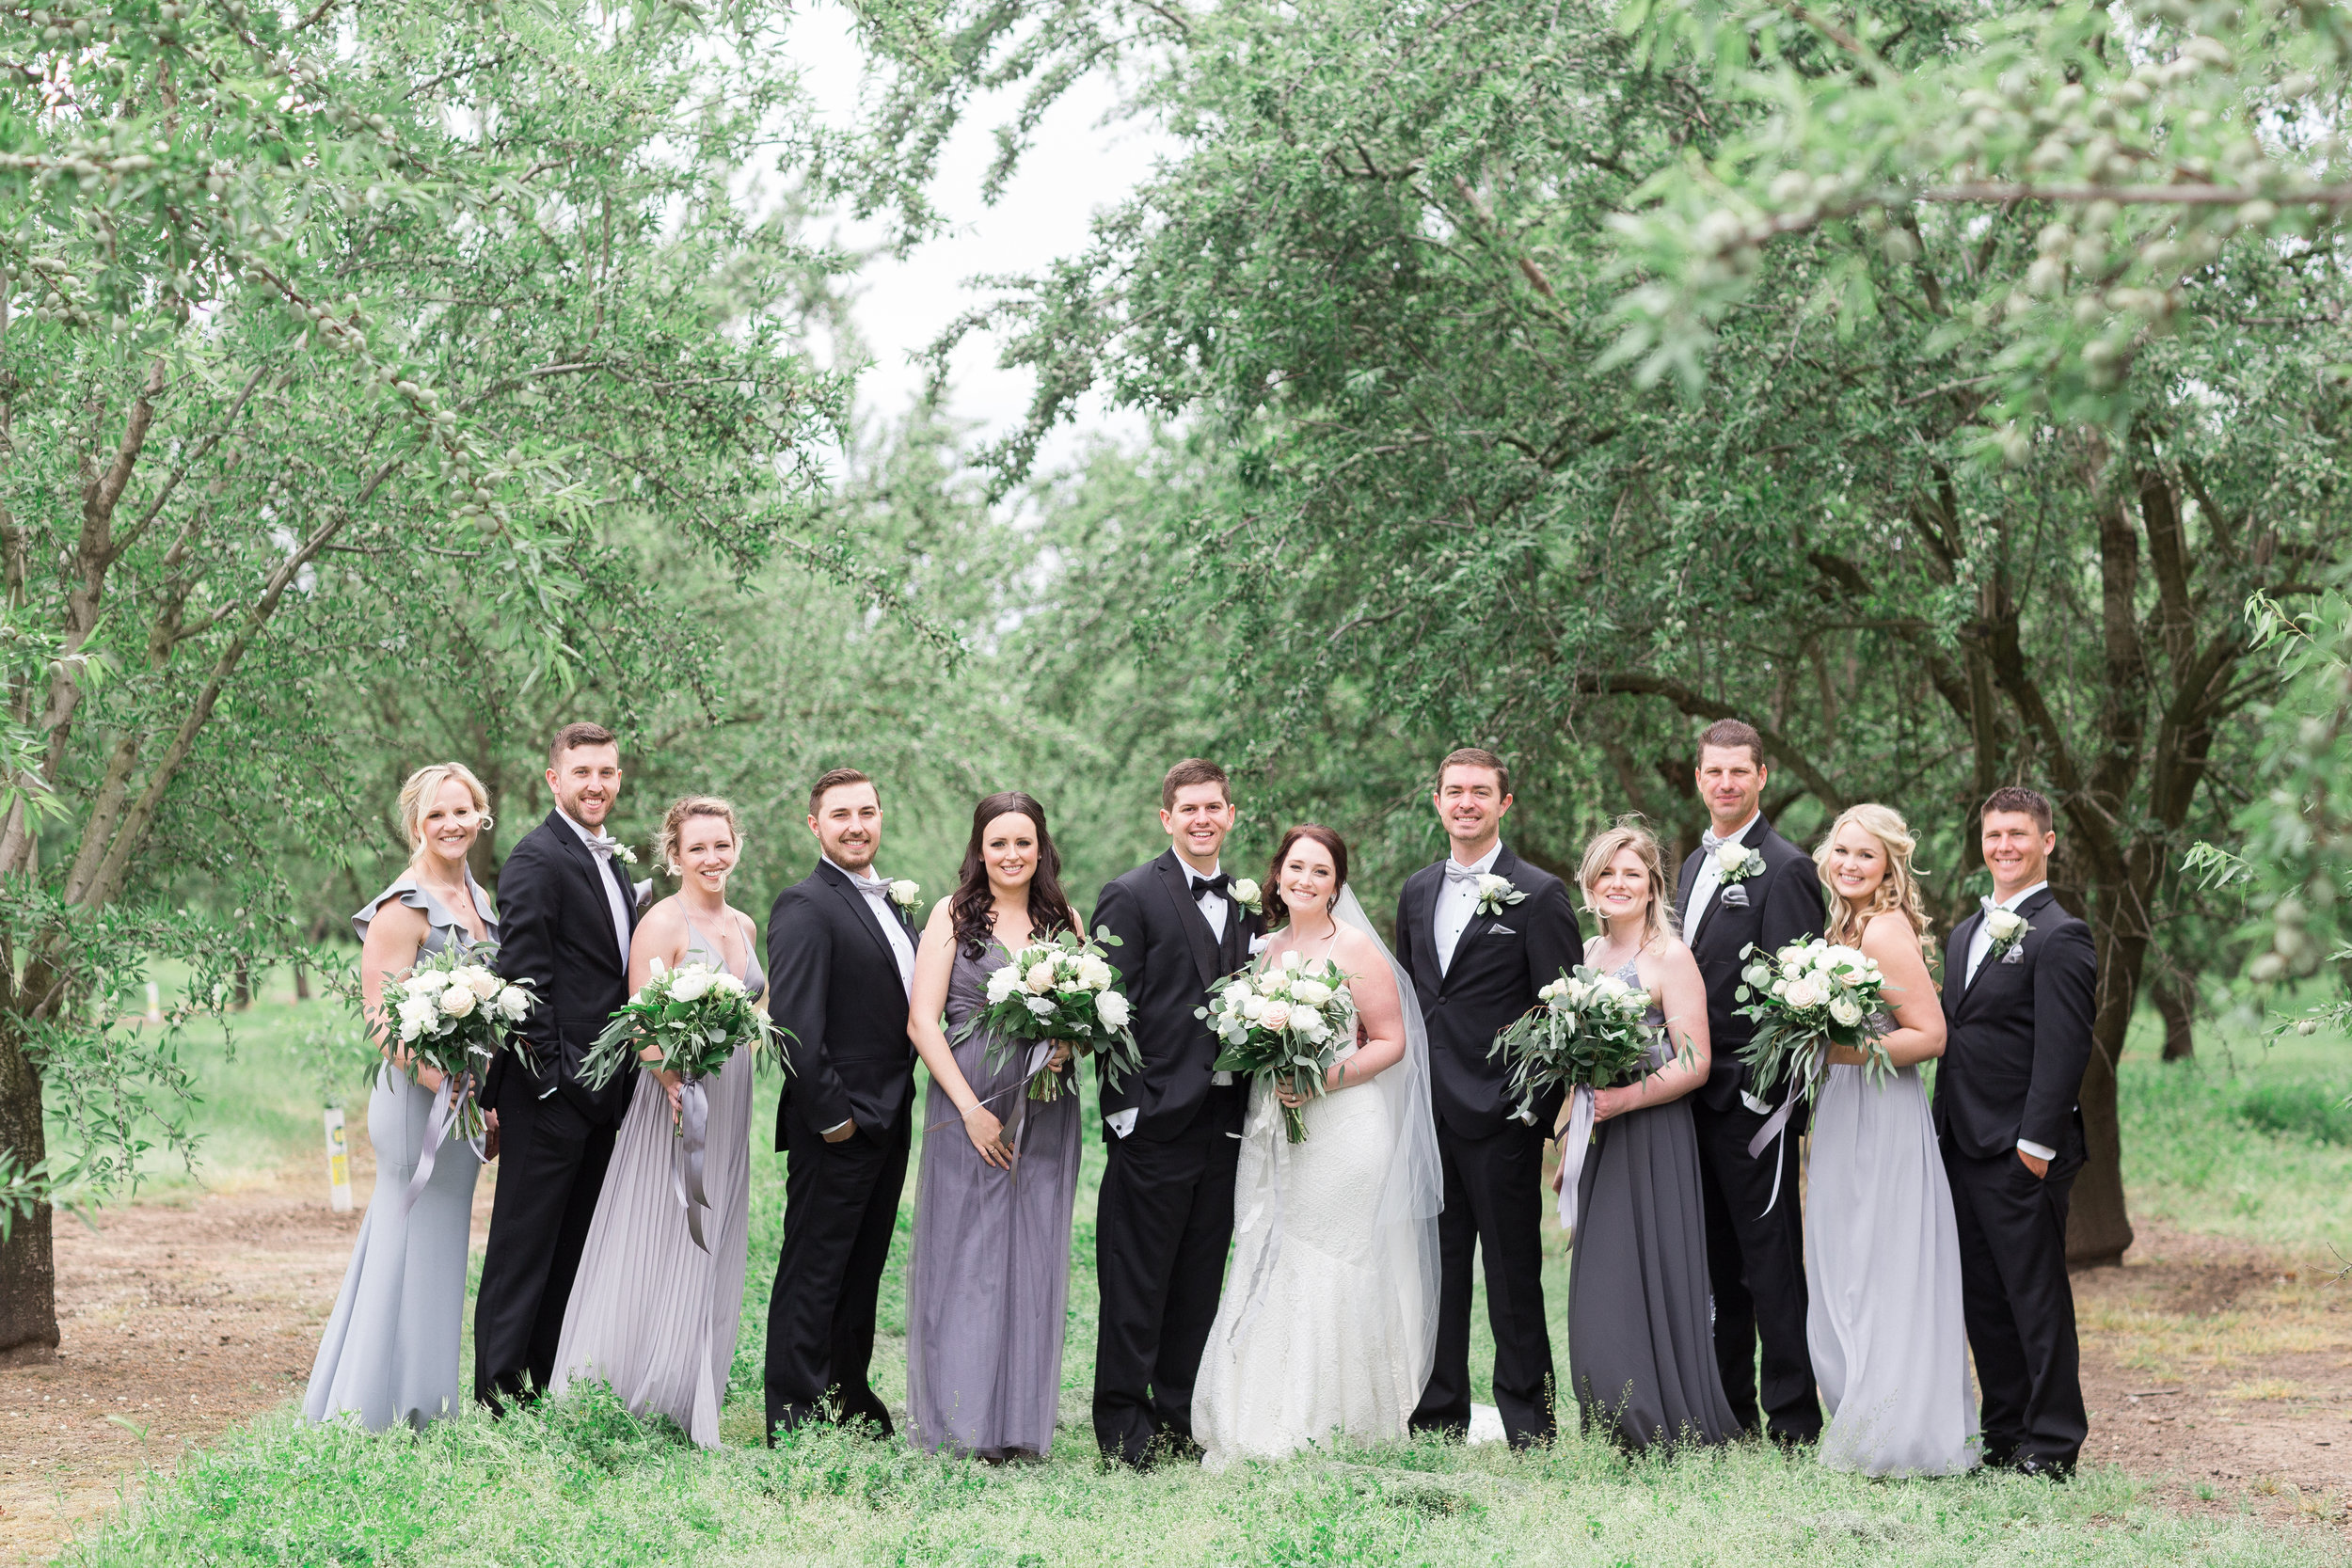 Patrick-Ranch-Wedding-Photos-146.jpg